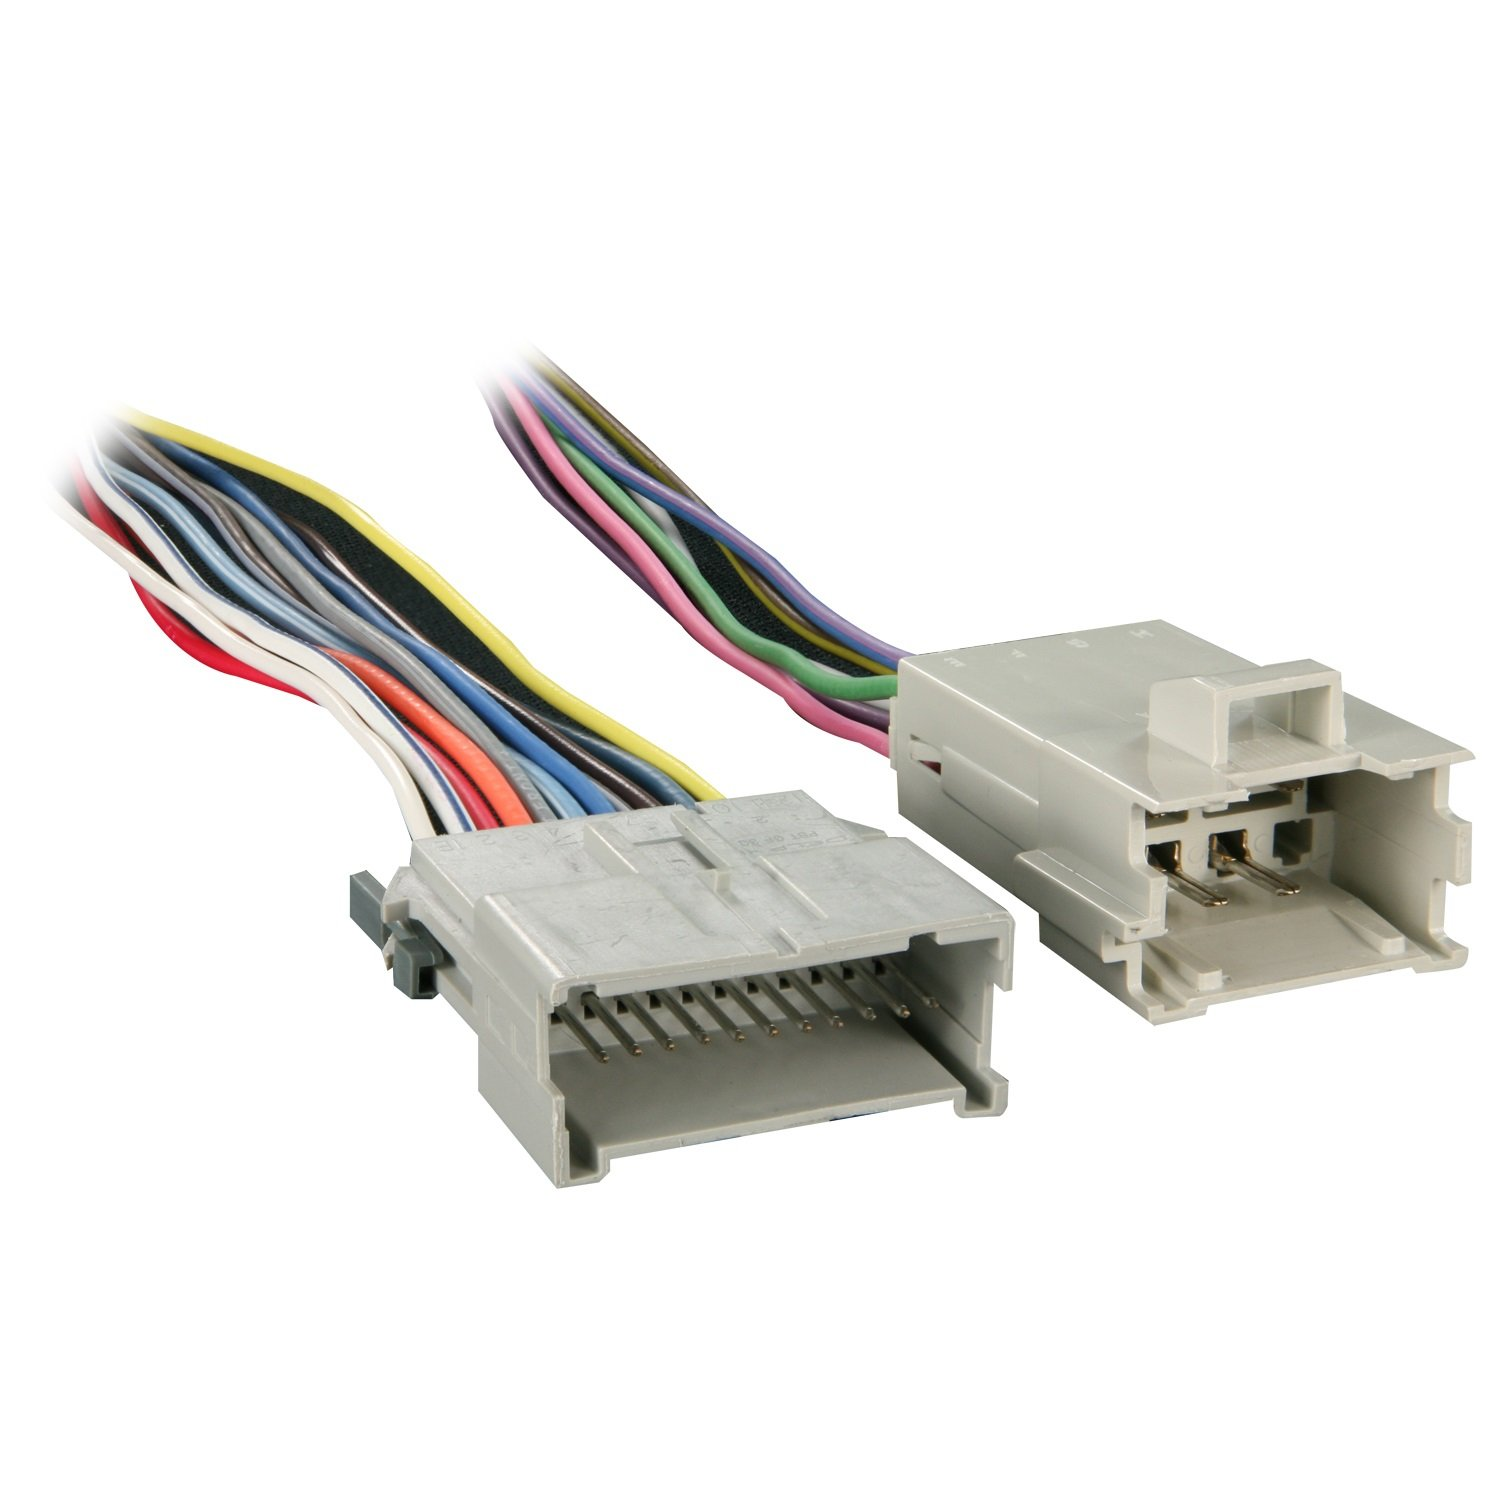 71gEc%2BOPJ8L._SL1500_ amazon com metra 70 2054 factory amplifier bypass harness for GM Wiring Color Codes at gsmx.co